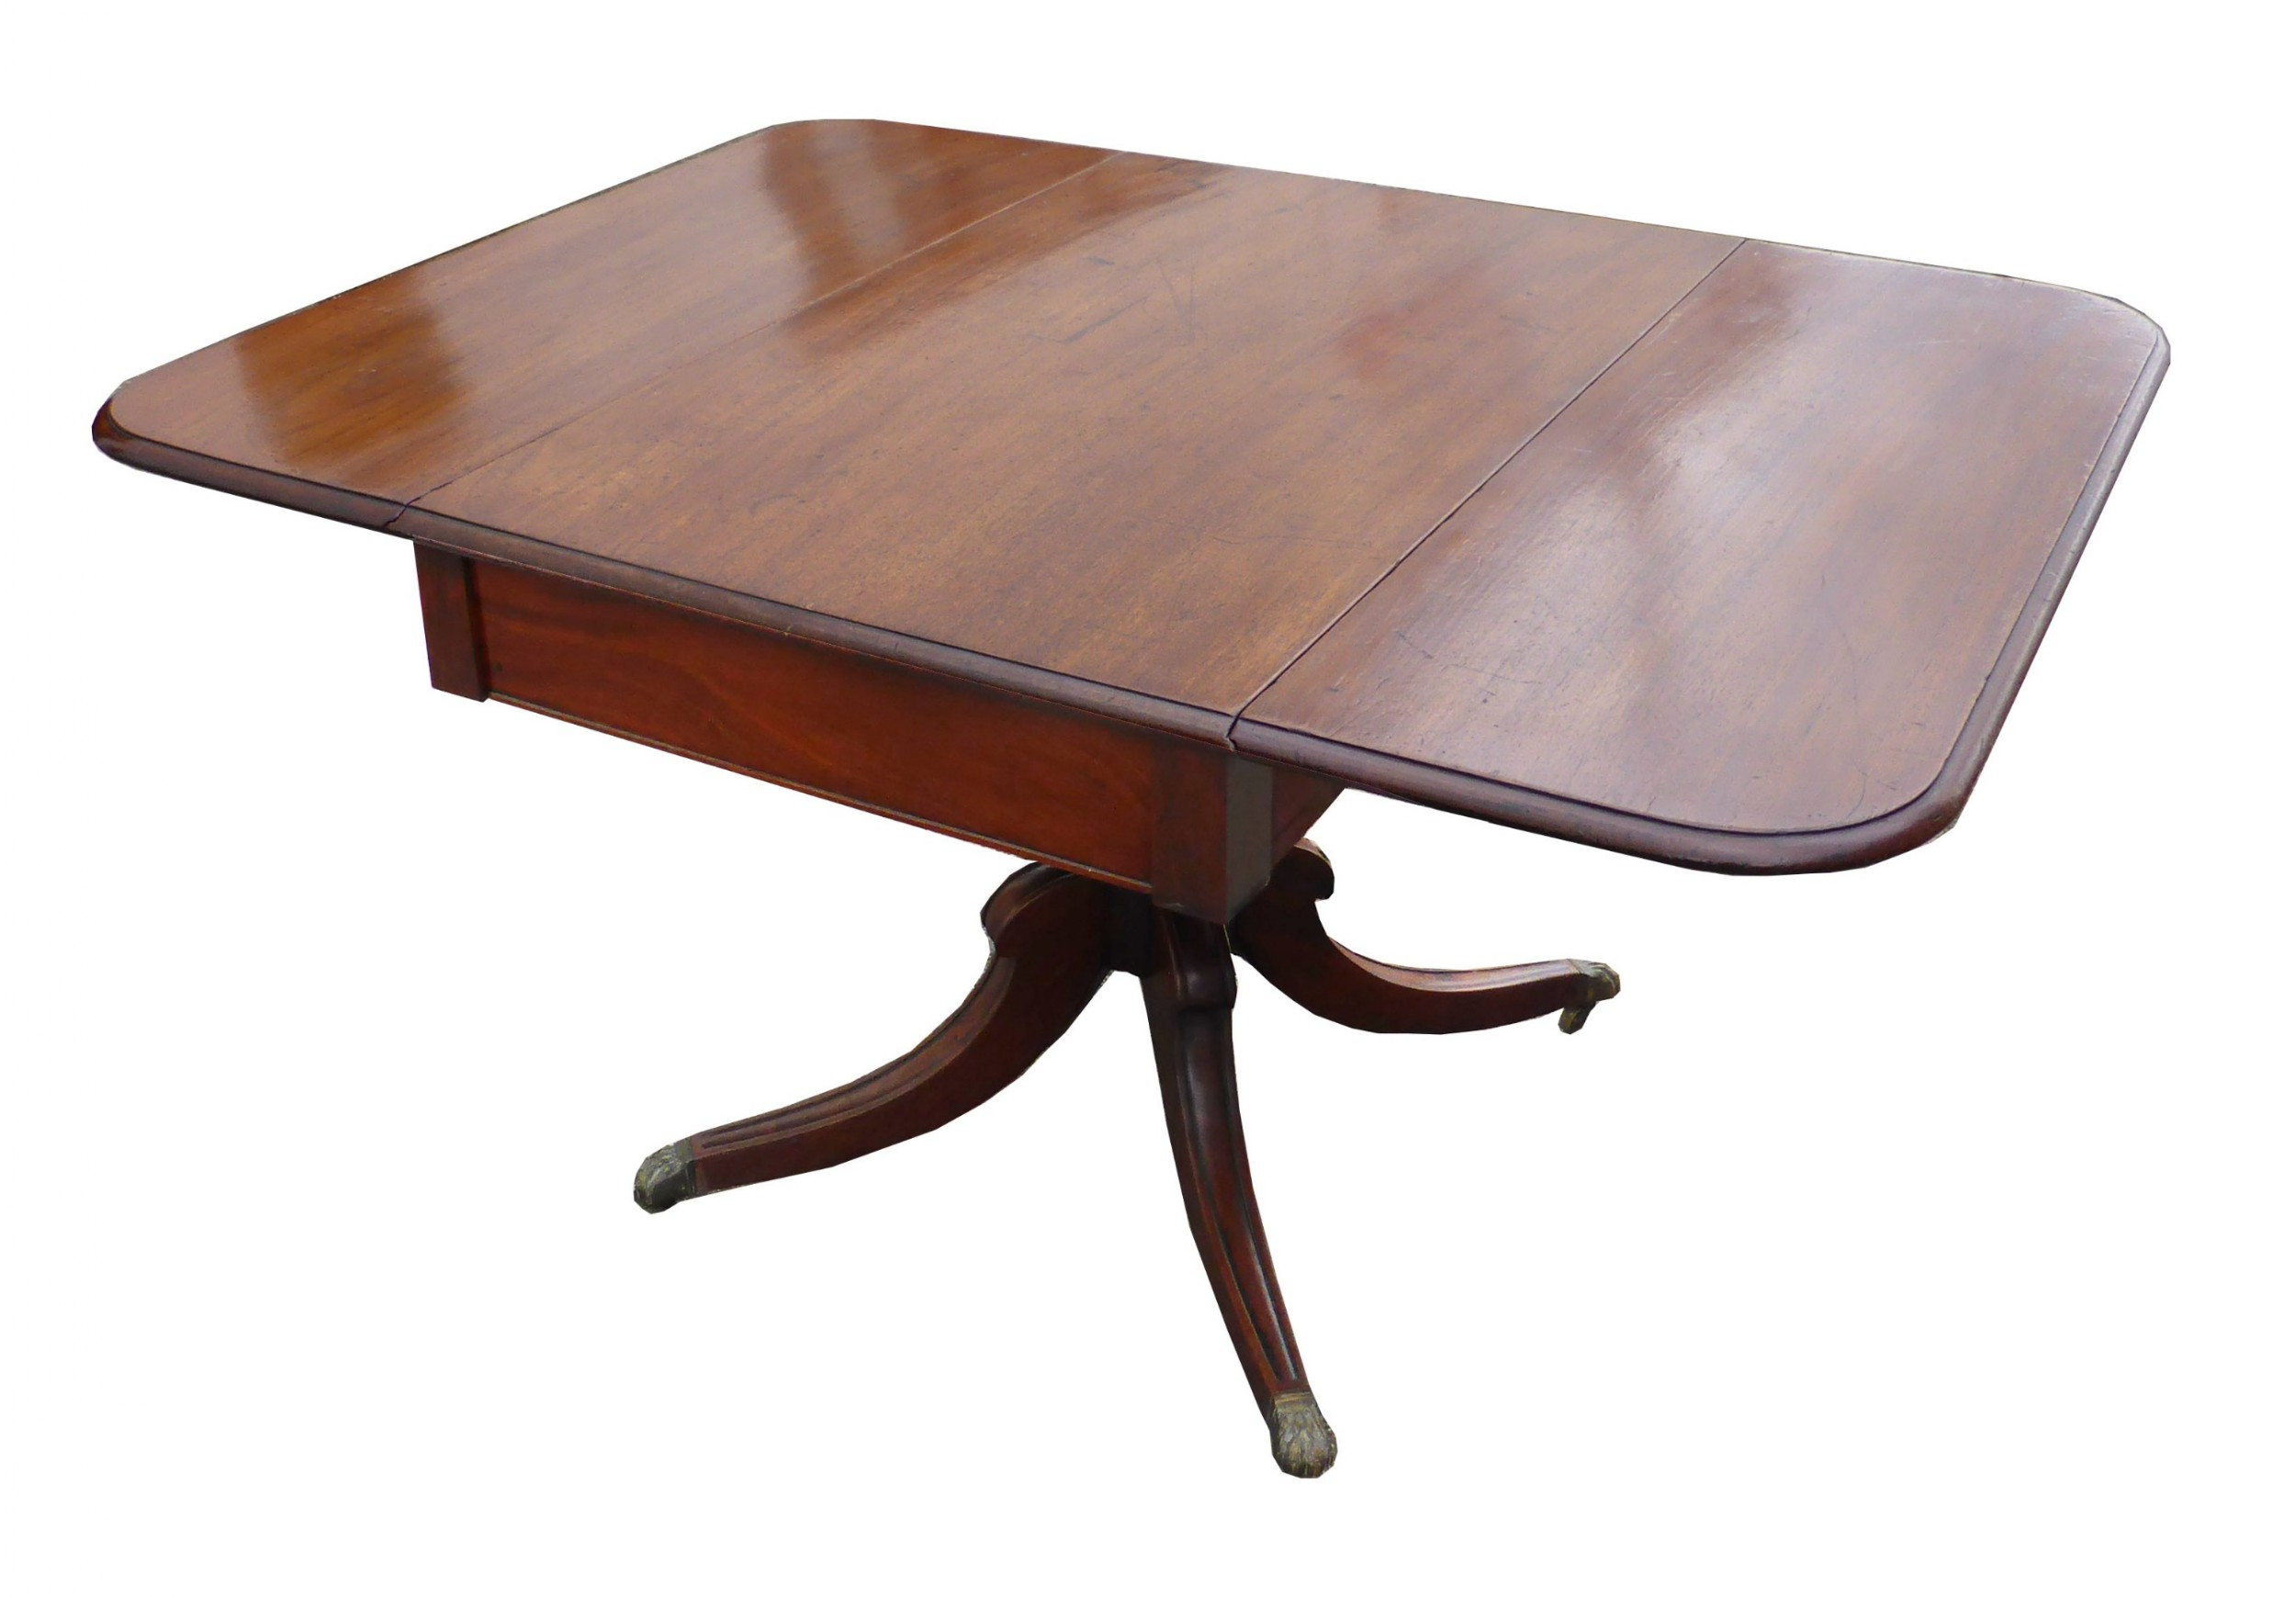 19th century george iii mahogany supper table